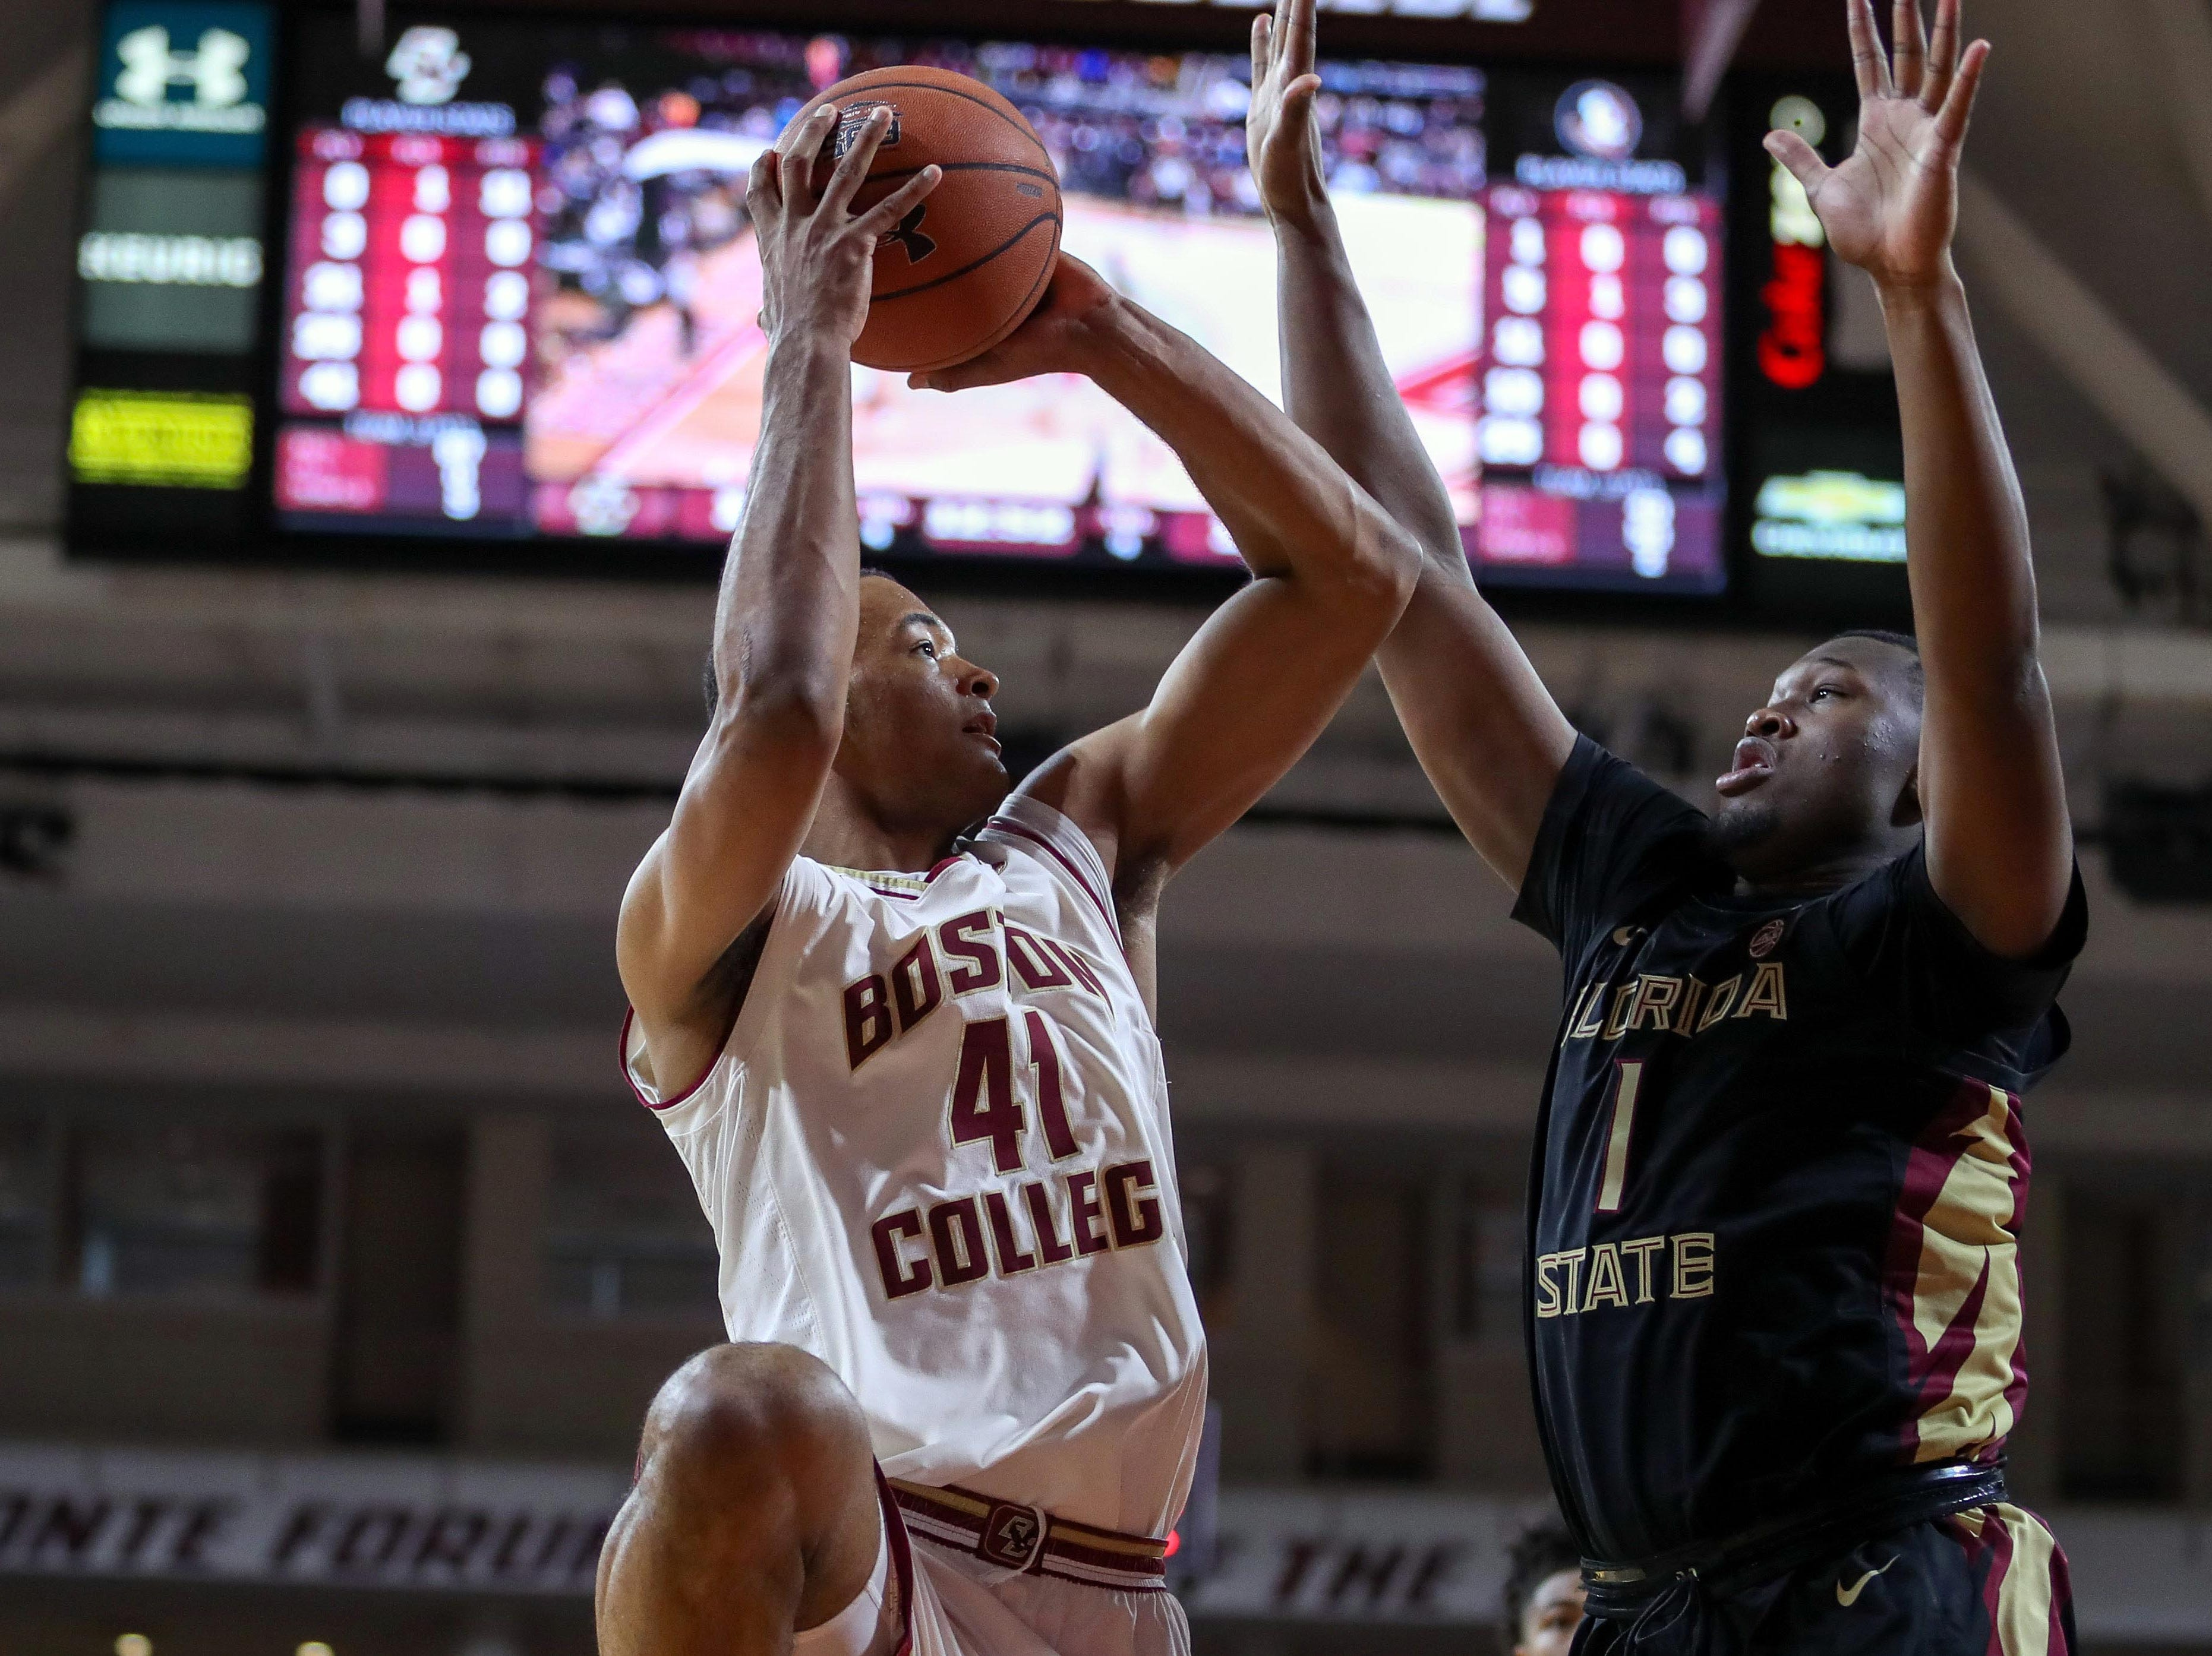 Jan 20, 2019; Chestnut Hill, MA, USA; Boston College Eagles forward Steffon Mitchell (41) shoots against Florida State Seminoles forward Raiquan Gray (1) during the first half at Conte Forum. Mandatory Credit: Paul Rutherford-USA TODAY Sports